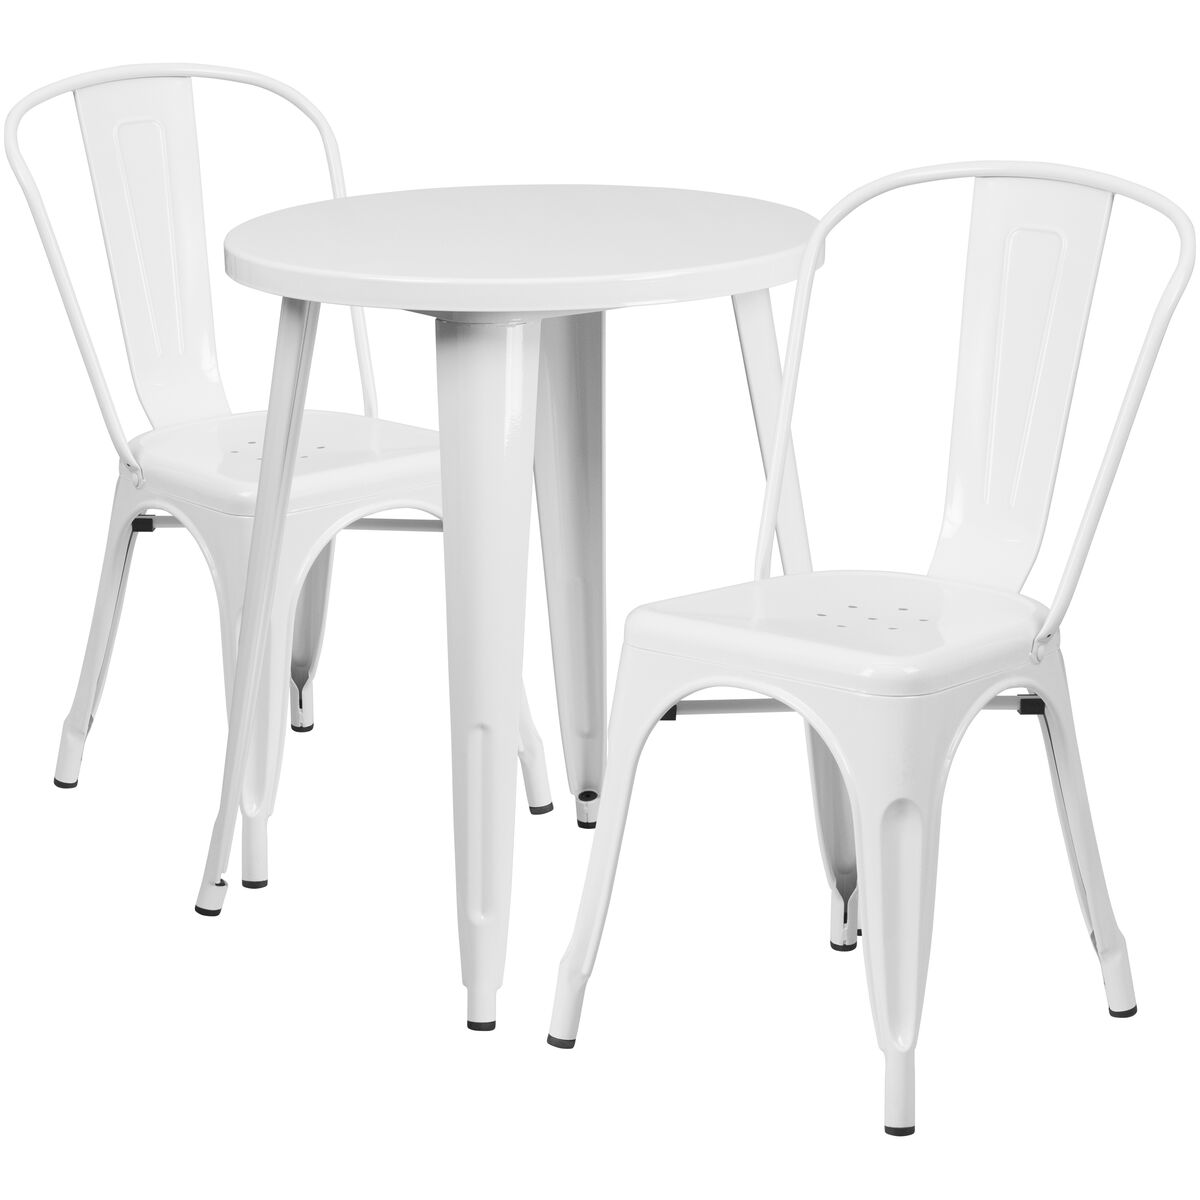 RD White Metal Table Set CHTHCAFEWHGG - Round metal cafe table